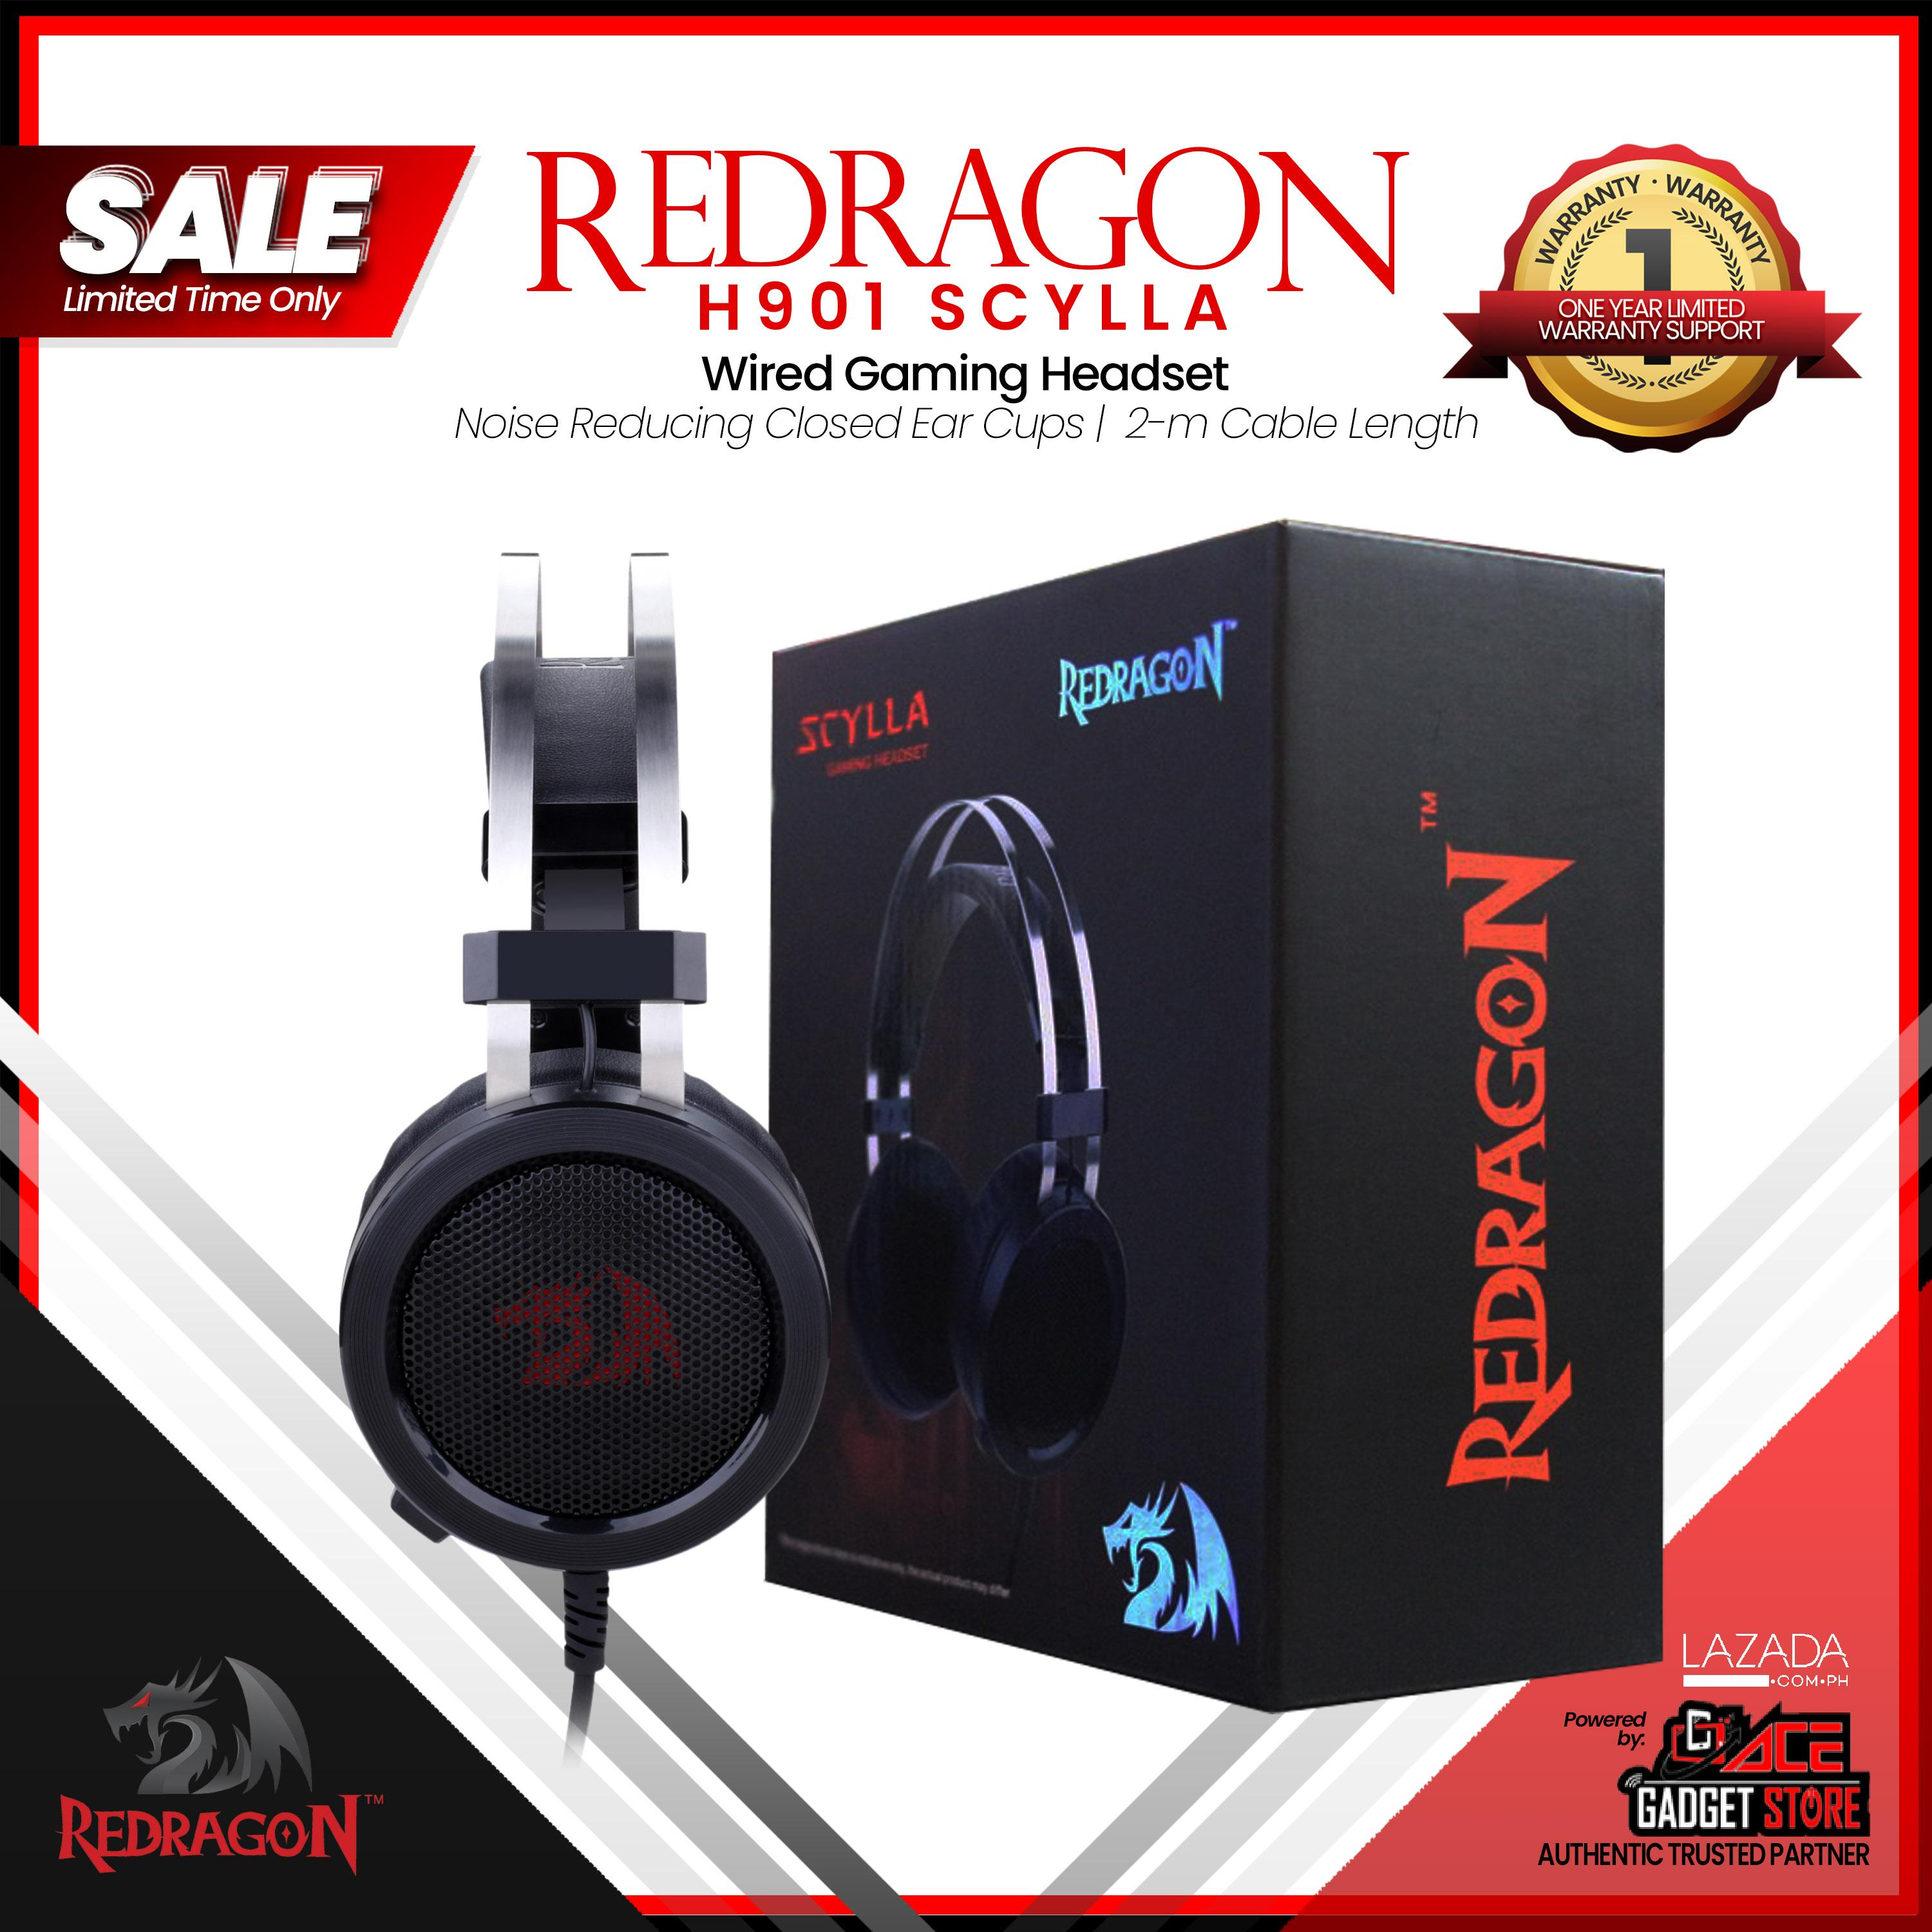 Redragon H901 Scylla Gaming Headset, Headset with Microphone for PC, PC  Gaming Headphones with Mic and built-in Noise Reduction works with PC,  Laptop,